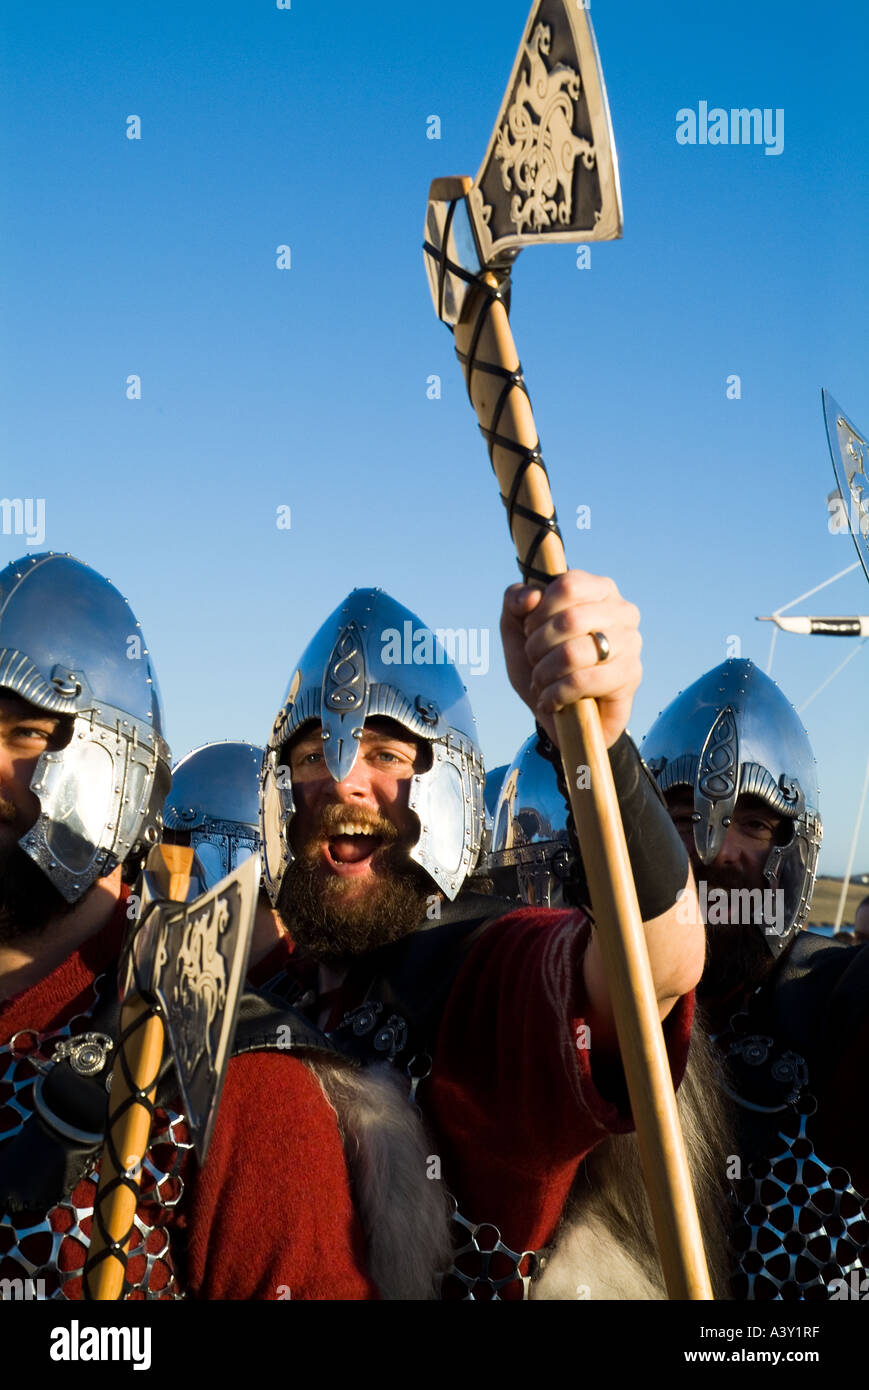 dh Up Helly Aa procession LERWICK SHETLAND Guizer Jarl Einar of Gullberuviks Viking cheering with axe - Stock Image